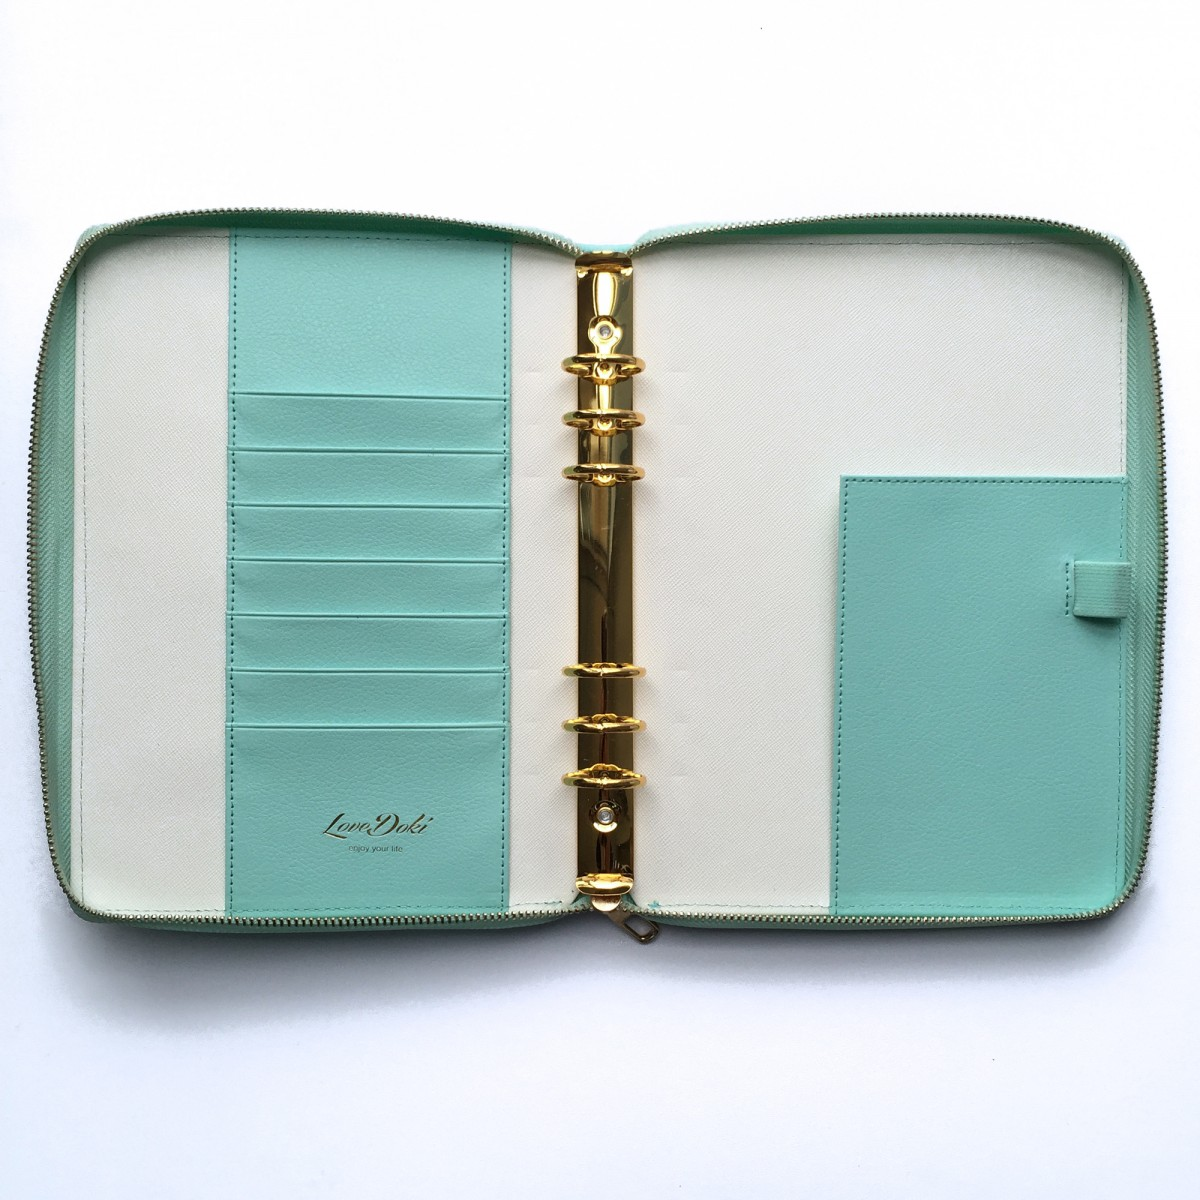 DOKIBOOK MINT DOTTED GOLD RINGS WITH ZIP LARGE